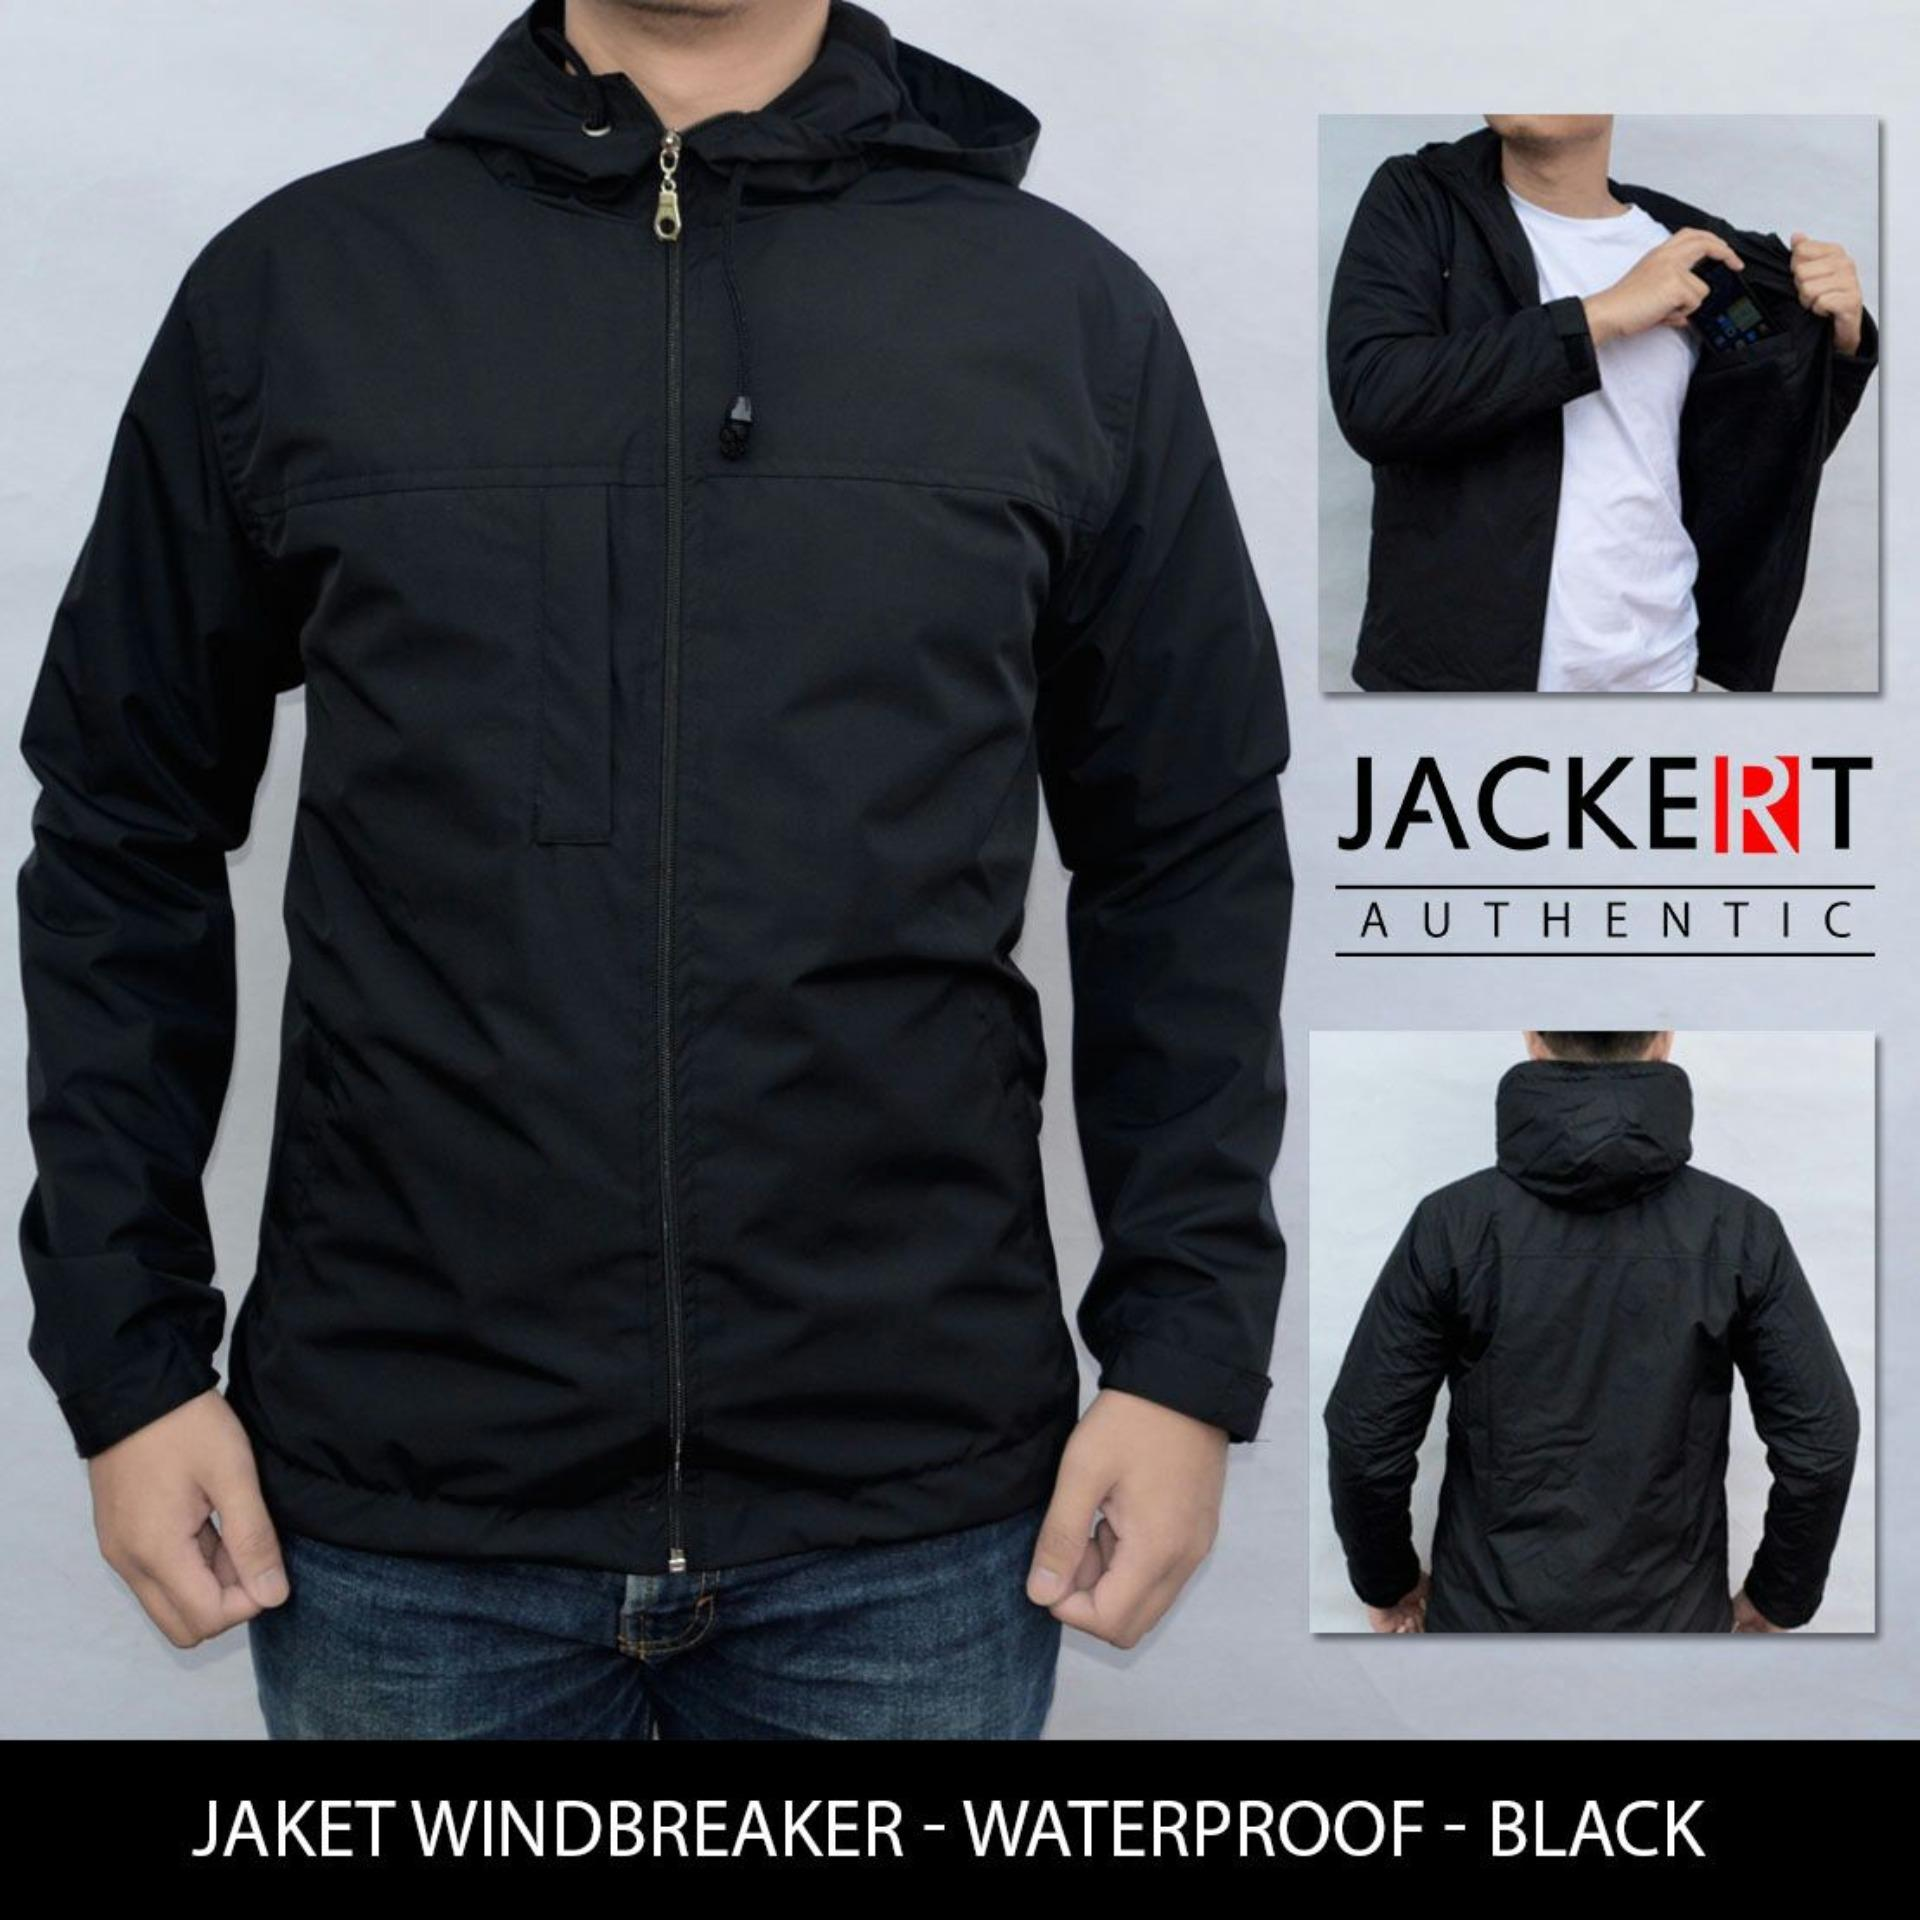 Toko Jaket Motor Harian Model Simple Polos Hitam Waterproof Semi Outdoor Murah Di Indonesia